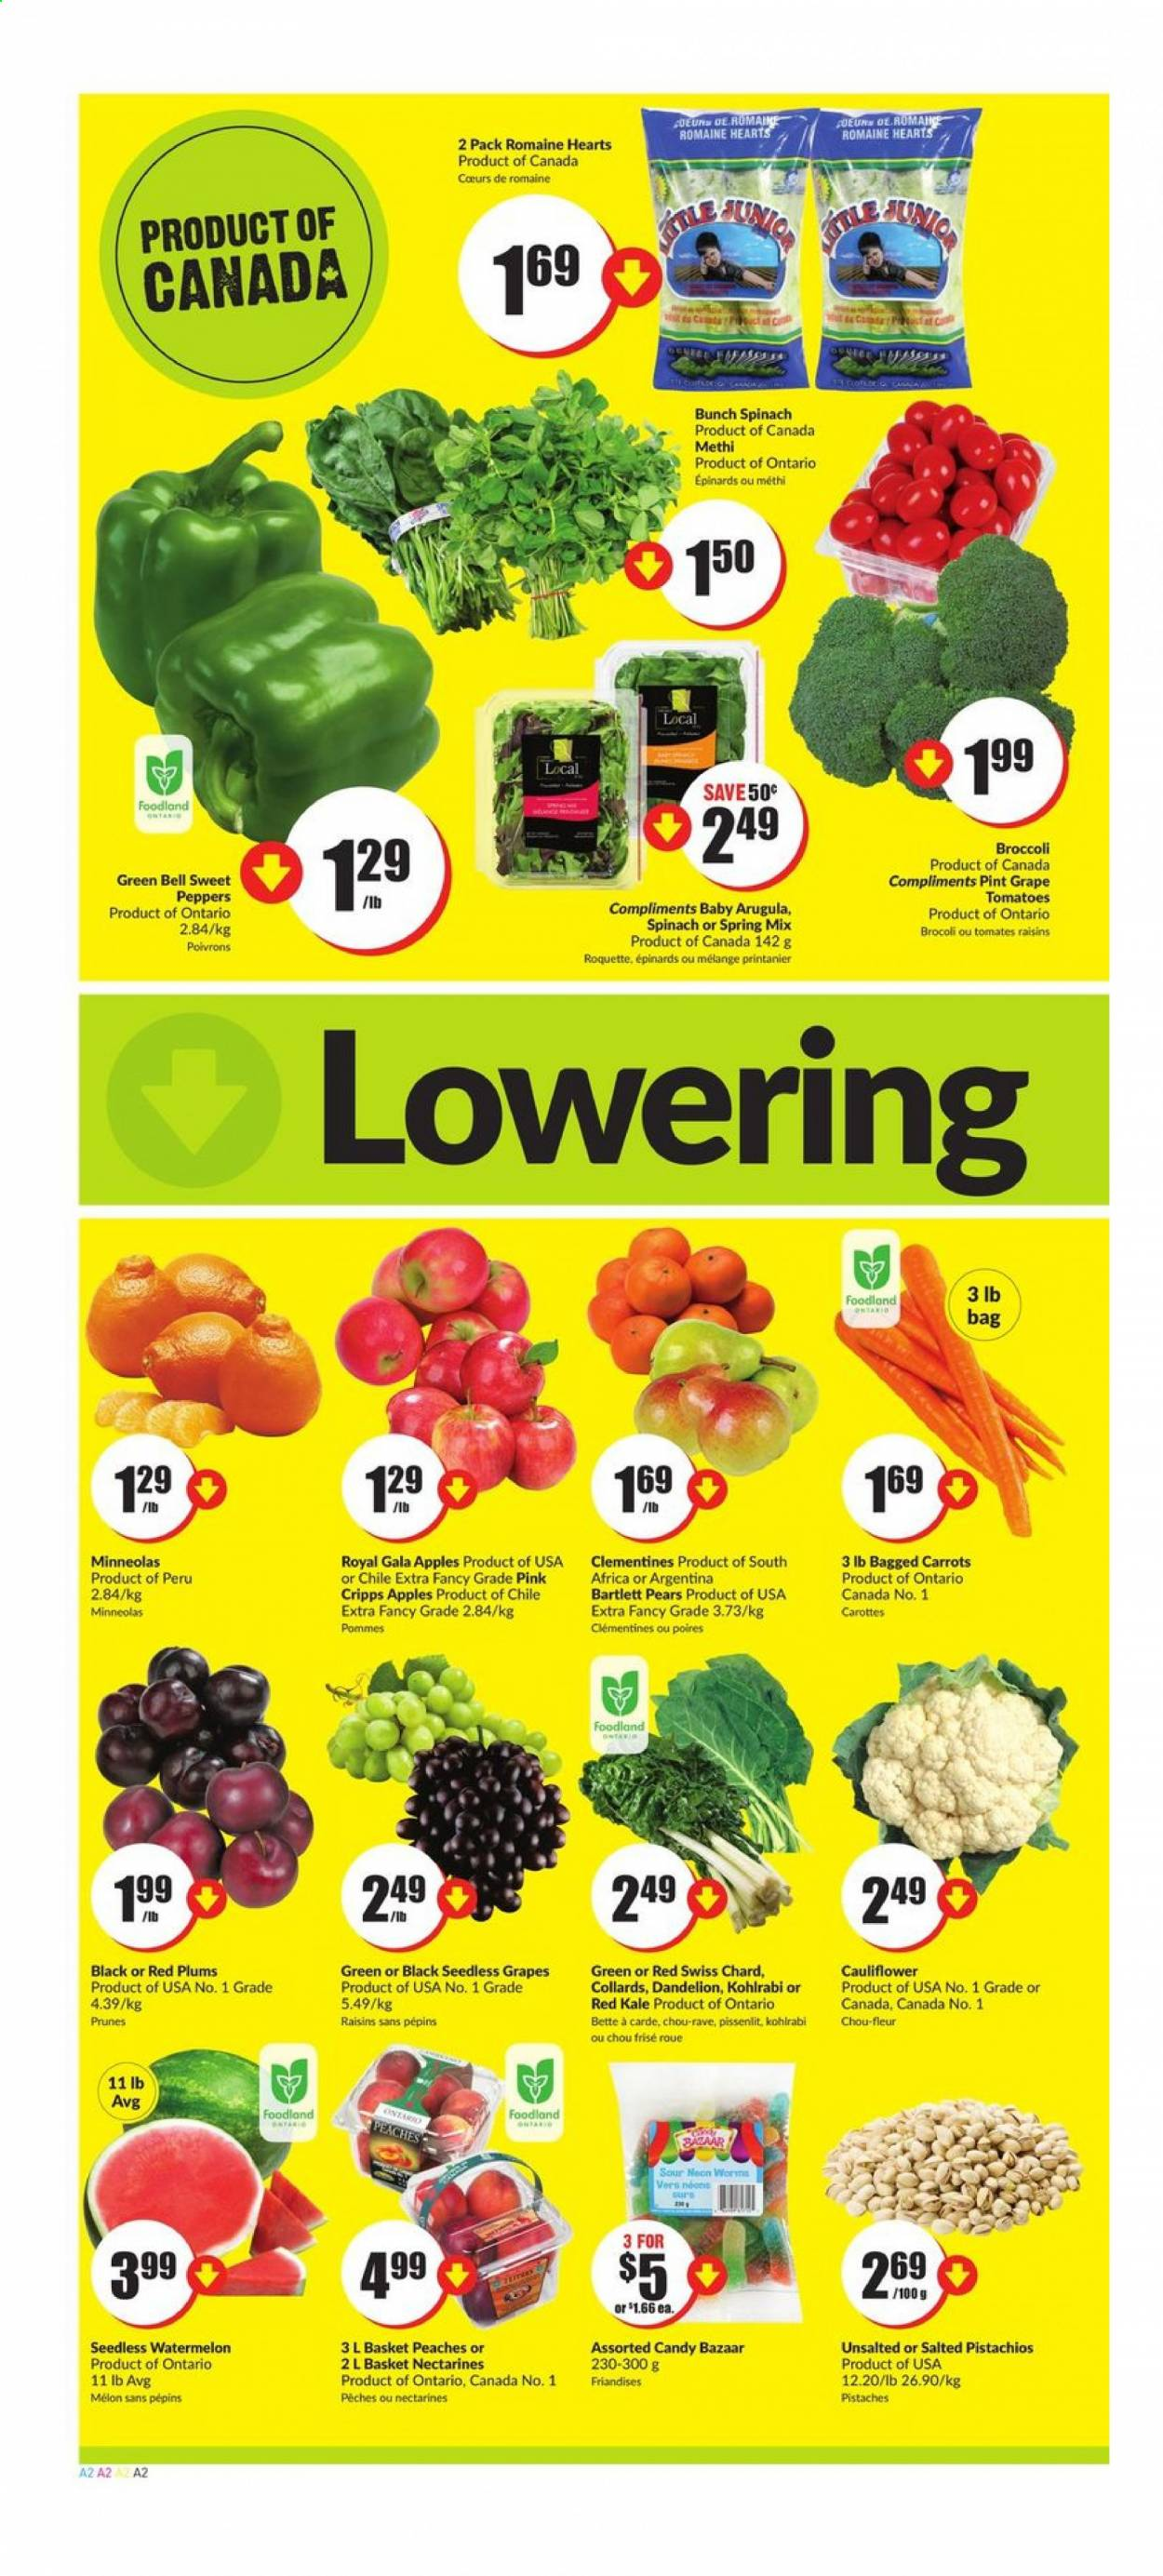 FreshCo. Flyer - August 13, 2020 - August 19, 2020 - Sales products - arugula, bag, bartlett pears, basket, broccoli, carrots, cauliflower, clémentines, gala apples, grapes, kohlrabi, nectarines, raisins, seedless grapes, spinach, tomatoes, watermelon, kale, plums, prunes, chard, peaches, pears, red plums, candy, melon, avg, tomates, pommes, brocoli, carotte, epinard, fleur, chou, chou-fleur, prune, poivrons, pissenlit, pêche, roquette, spa. Page 2.